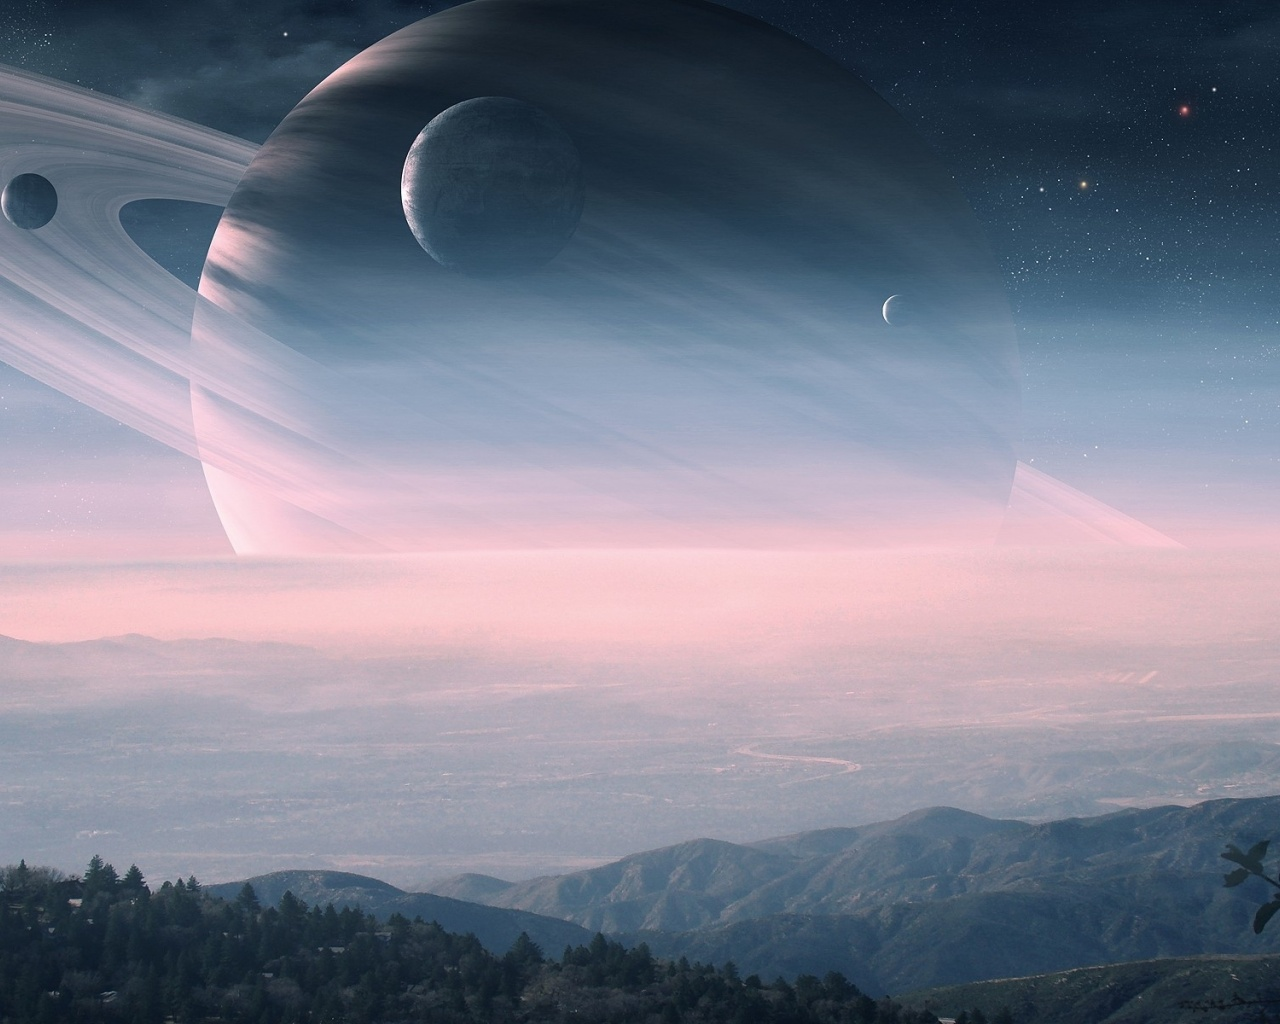 Wallpaper saturno wallpapers - 1280x1024 Digital Saturn Landscape